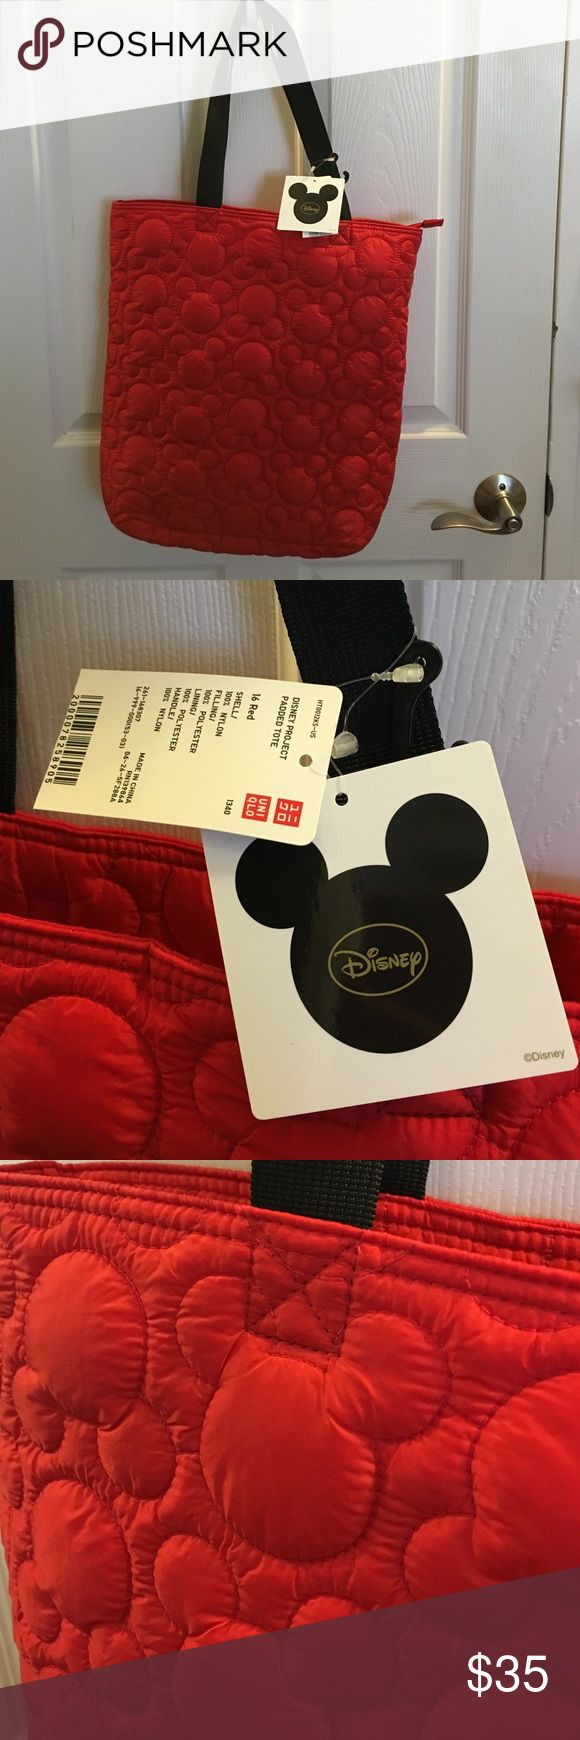 New! Red Mickey padded tote bag New with tags! Disney exclusive from uniqlo Mickey Mouse padded tote. UNIQLO Bags Totes